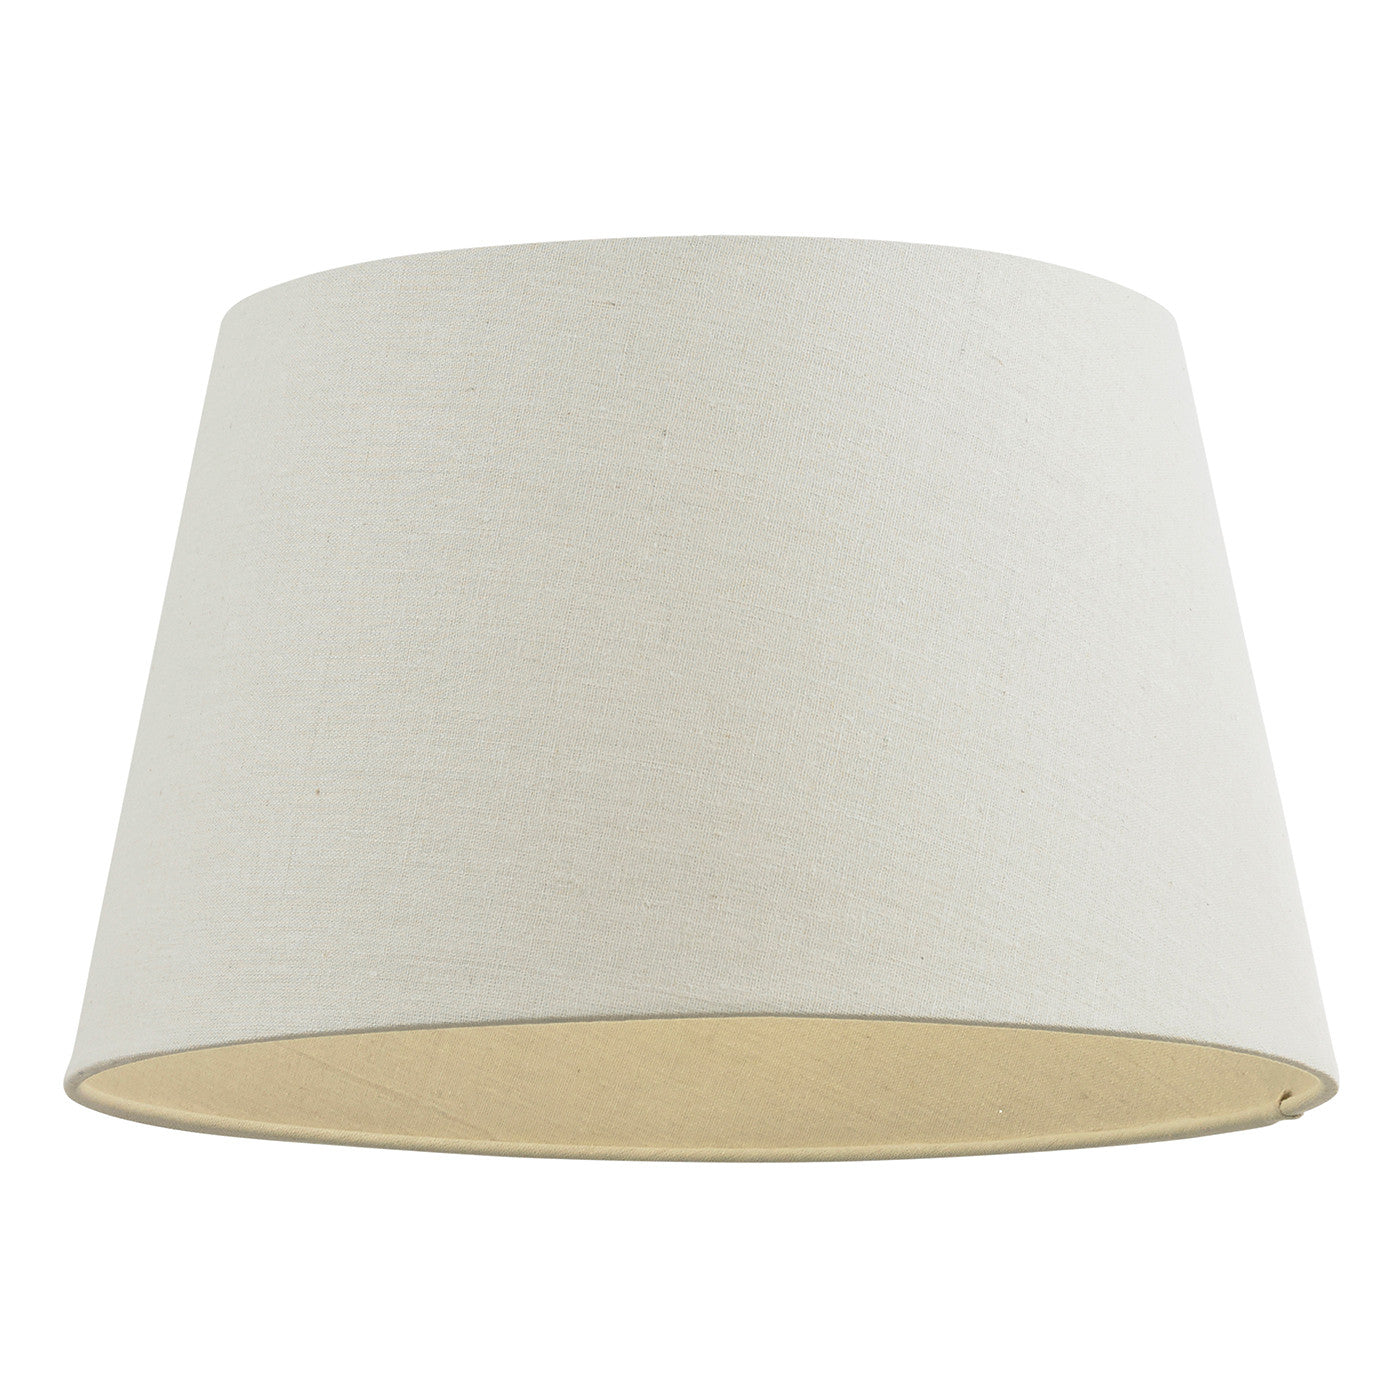 Cici 14 Inch Ivory Table/Floor Lampshade